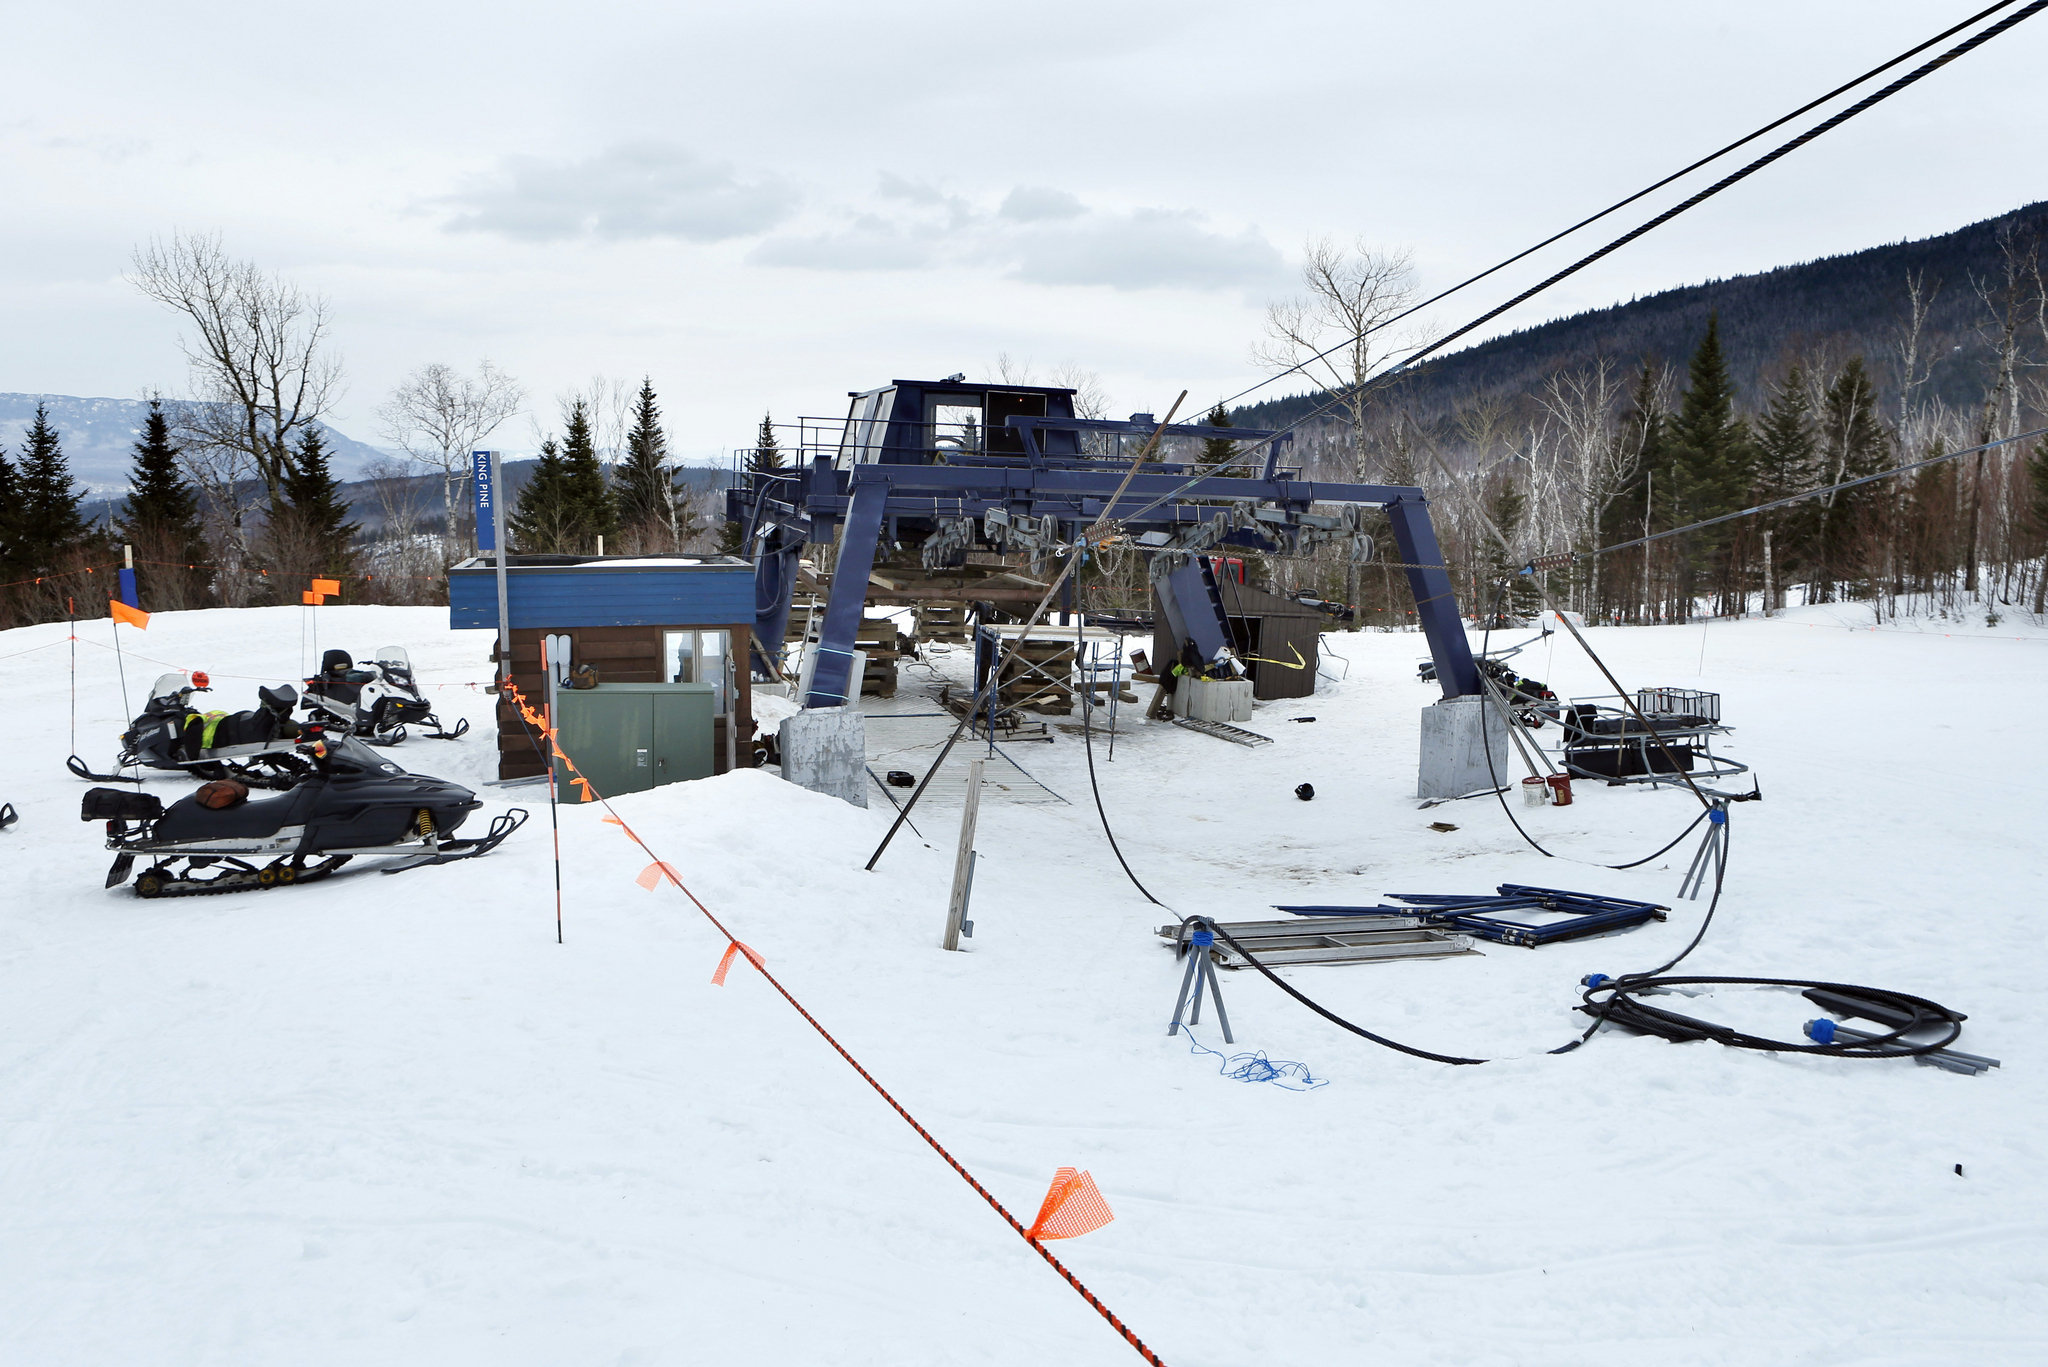 Maine ski resort accident prompts Upstate NY chairlift pany to